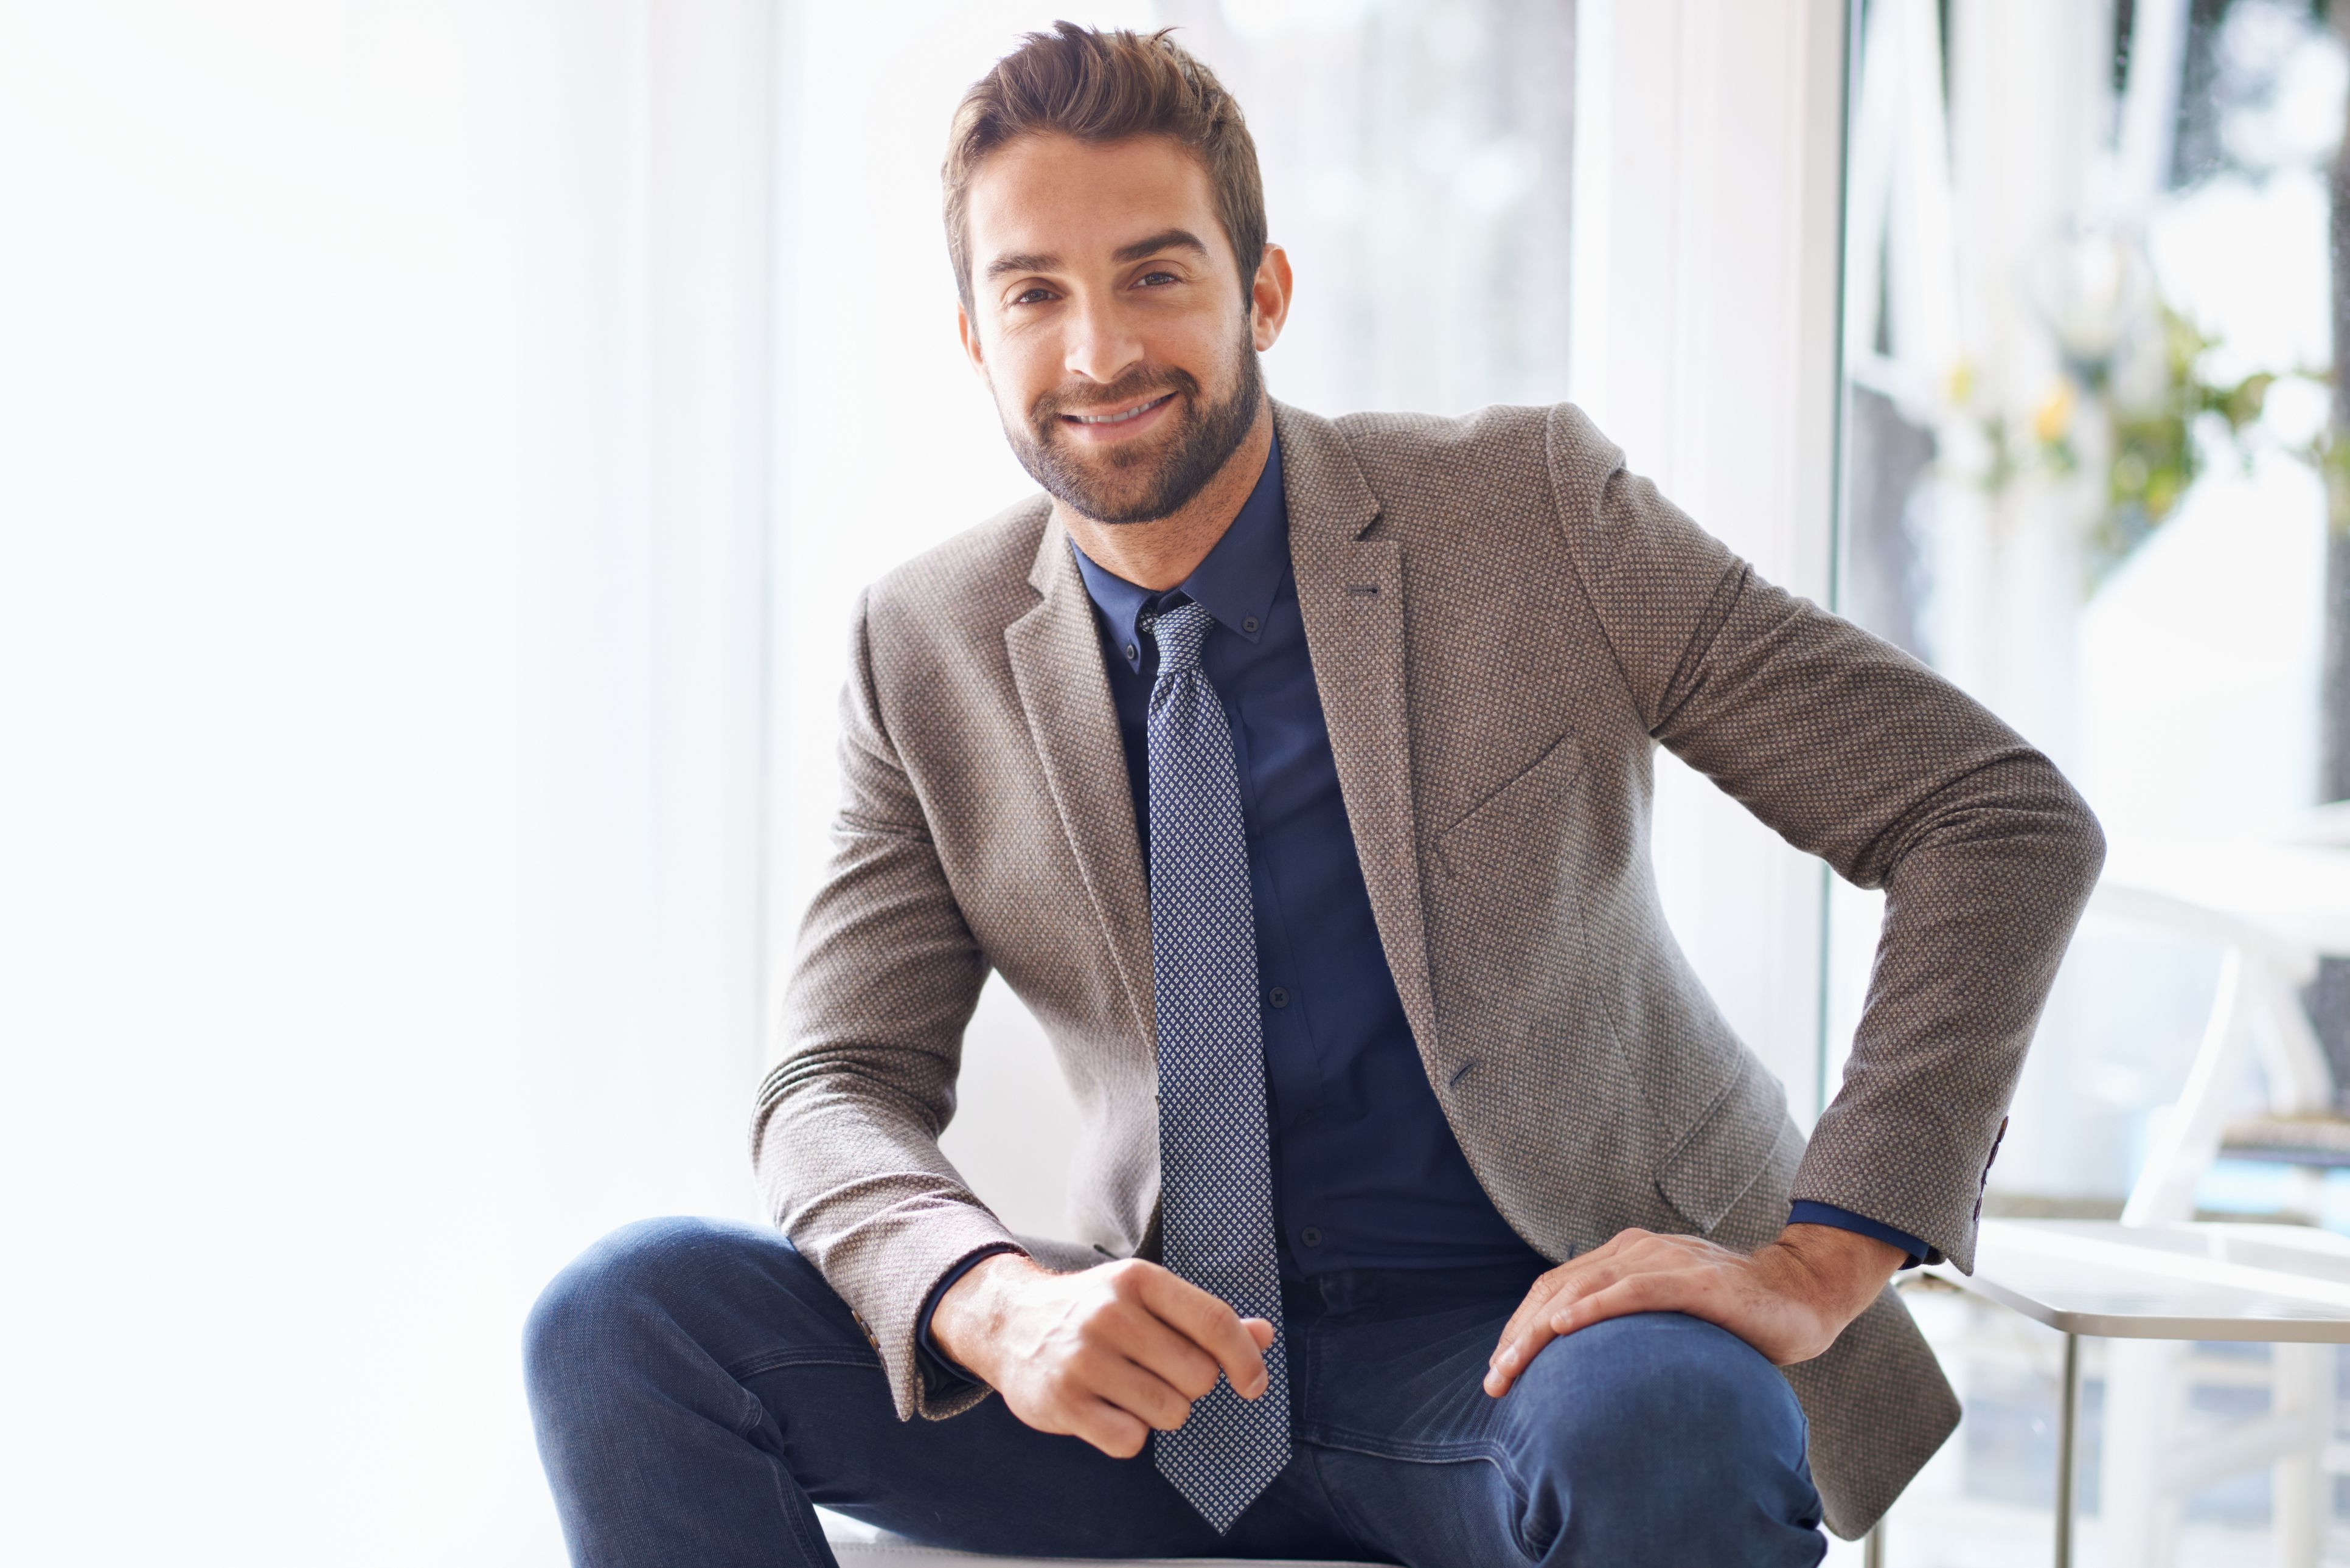 Young man wearing a shirt, tie, blazer, and jeans.